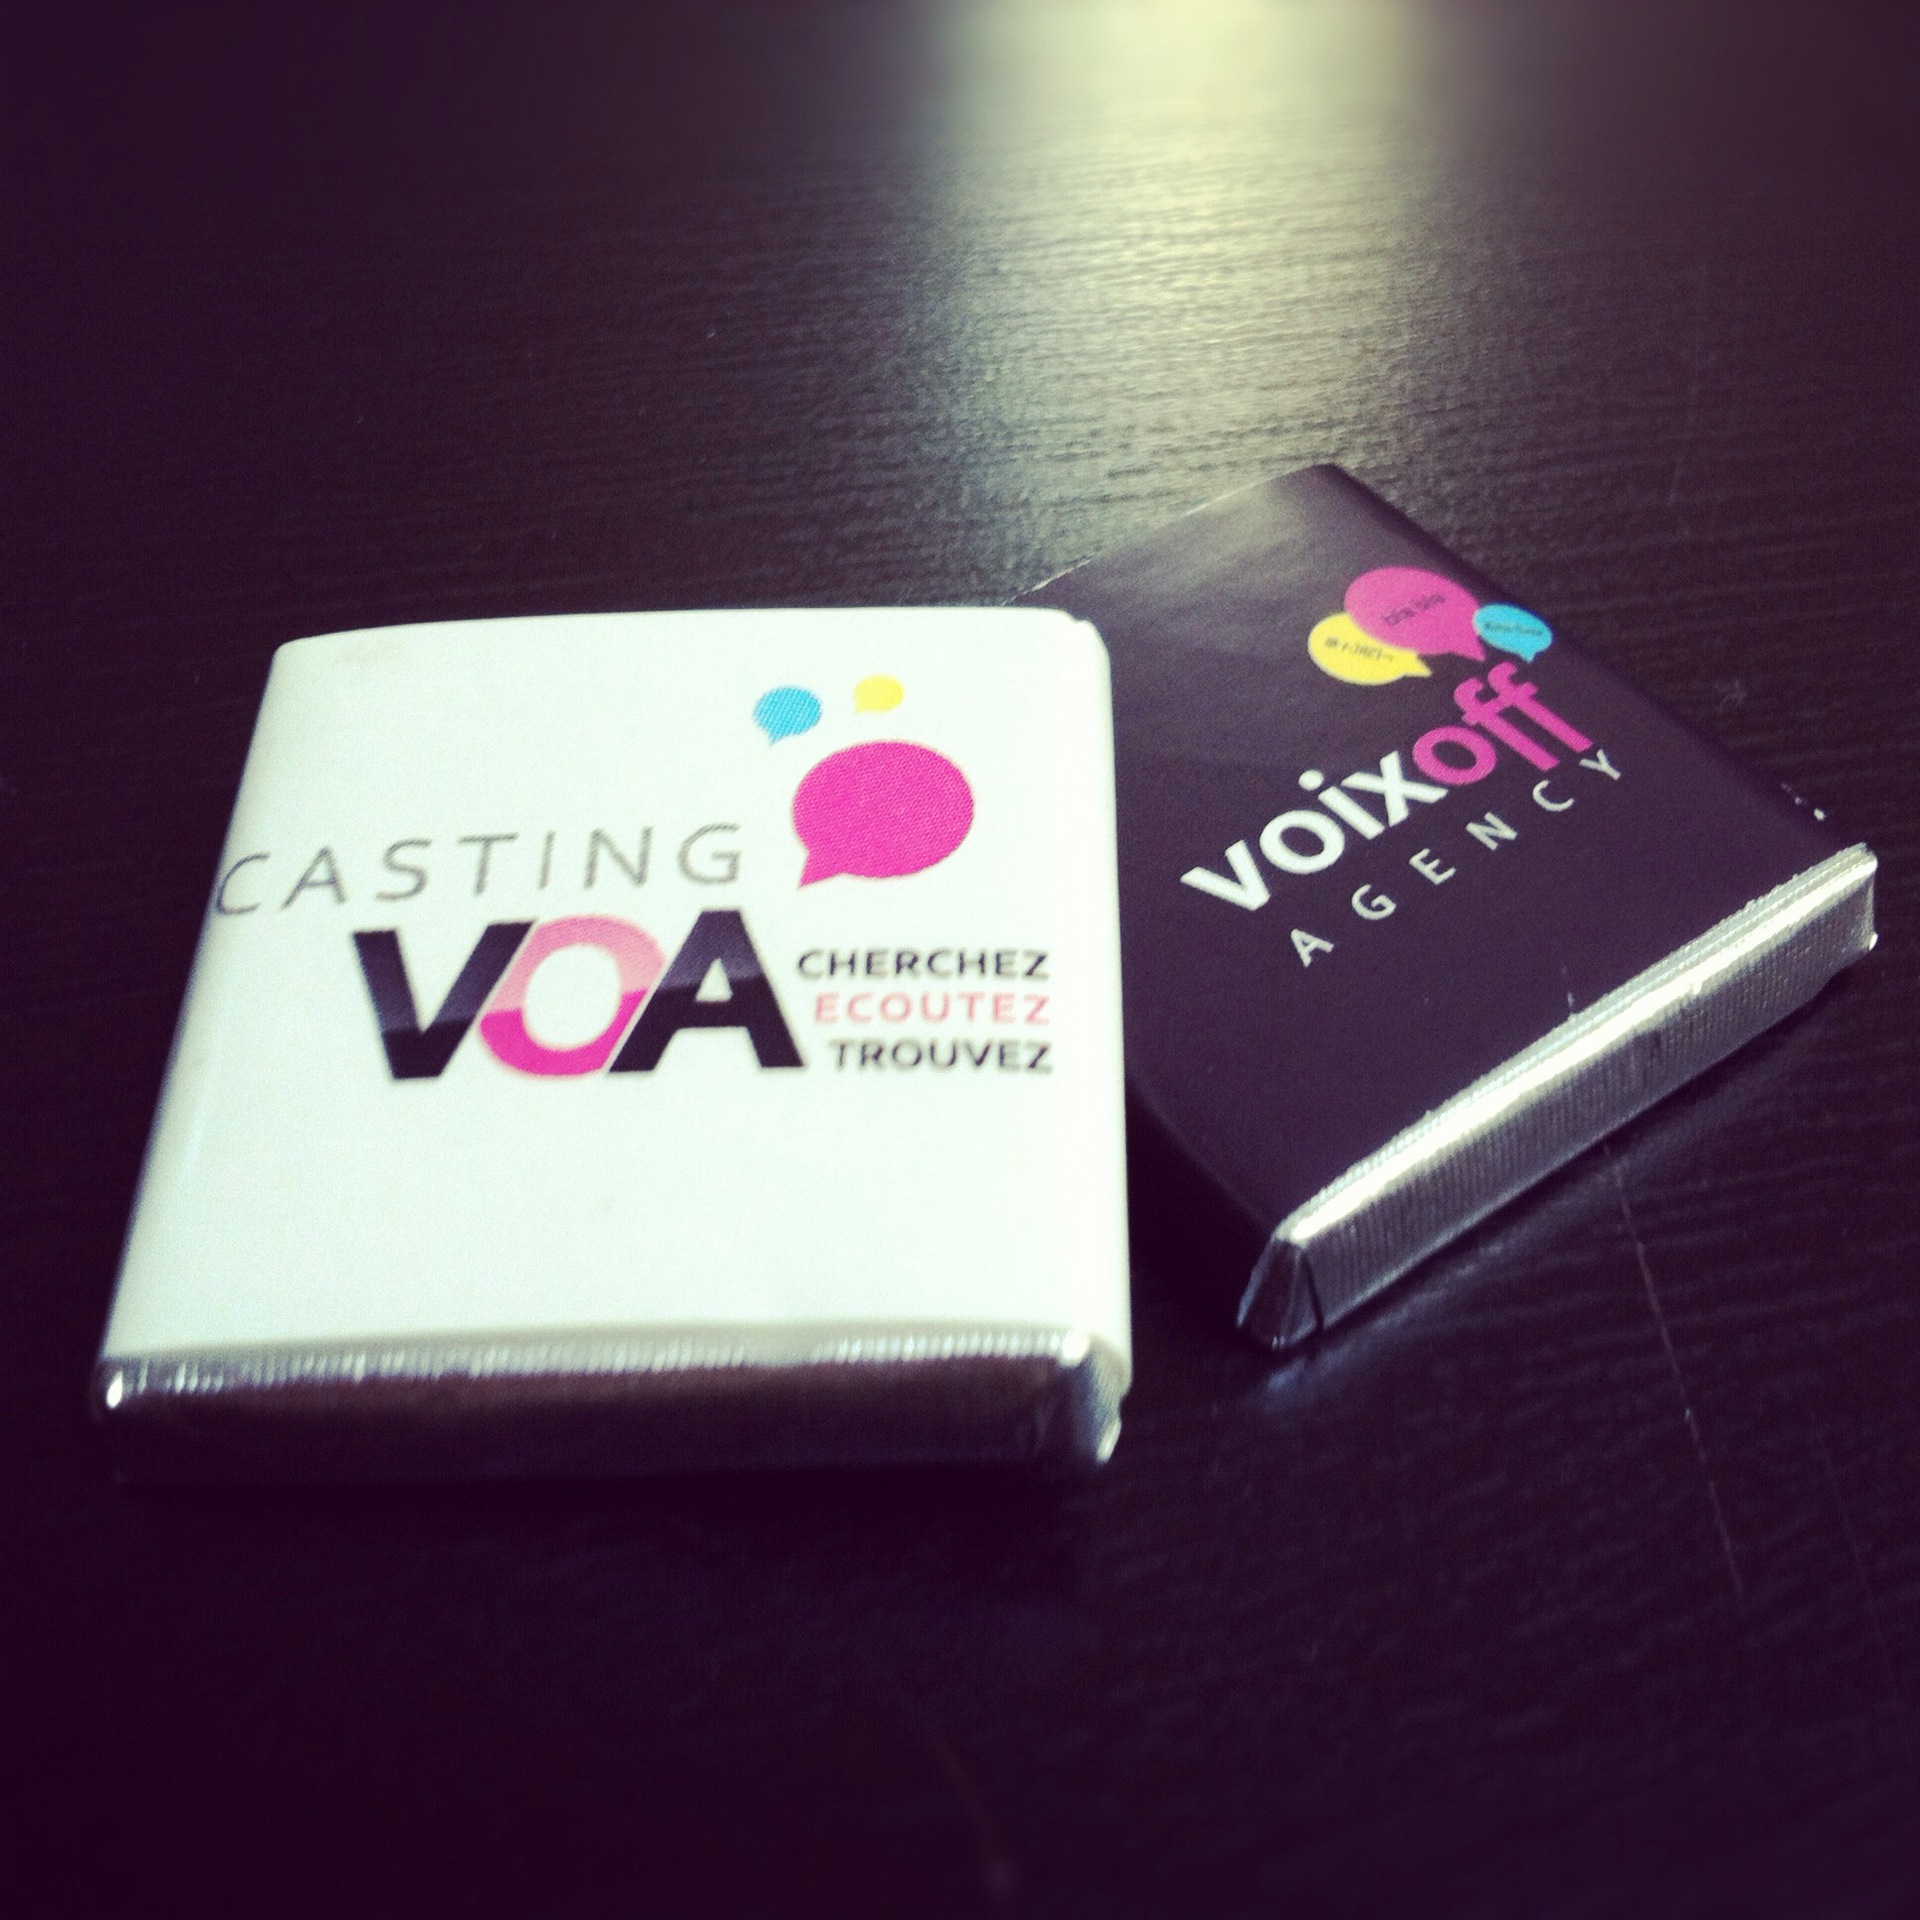 Voix Off Agency / Casting VOA chocolats